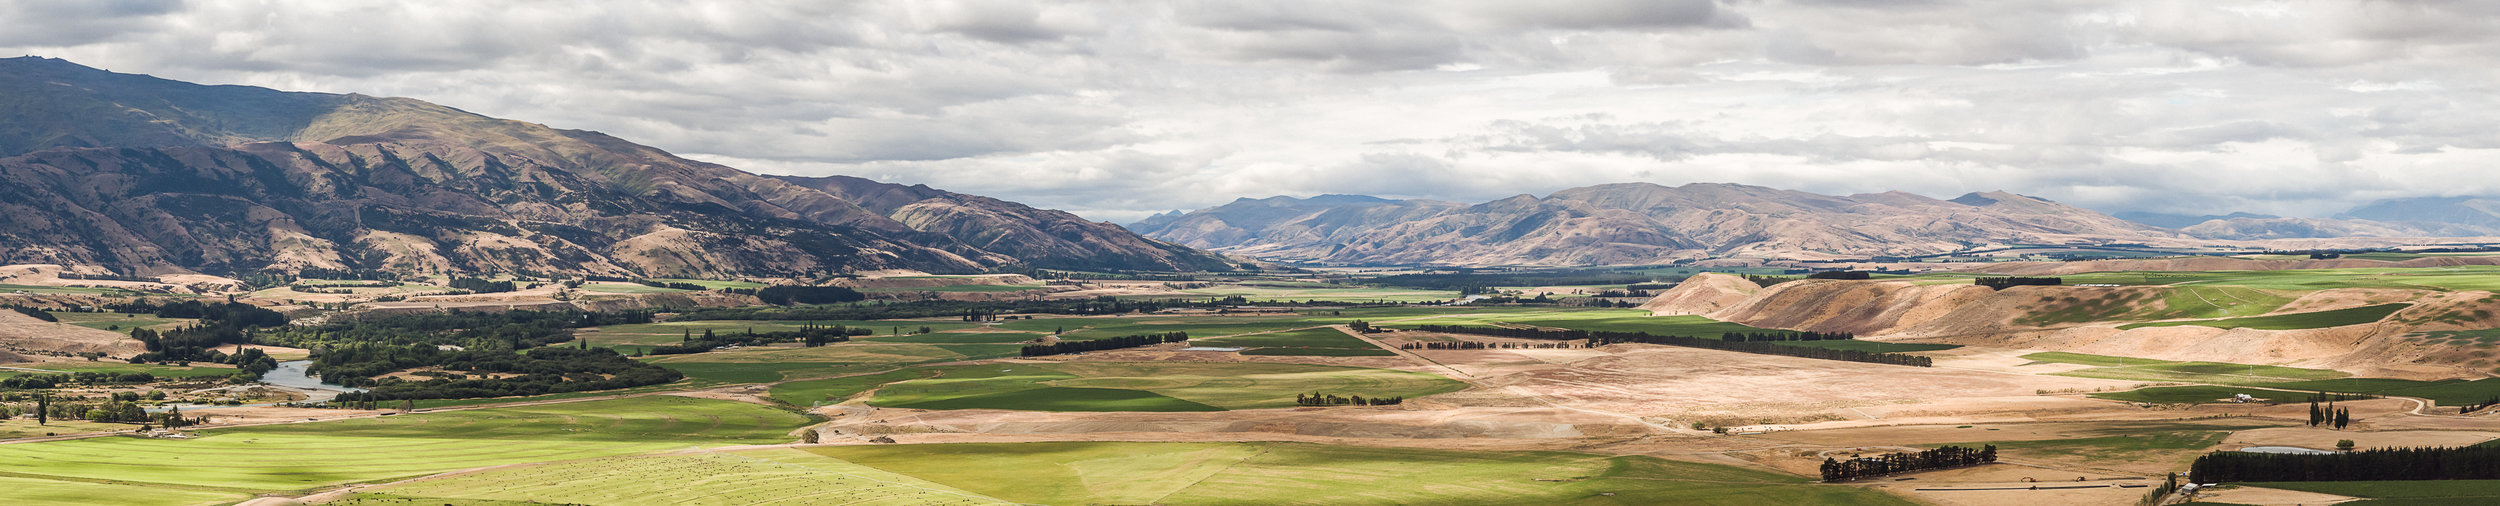 Remnants of the Pleistocene Epoch surround Zebra's Bendigo Flat Vineyard (centre frame), taking in the Pisa Range to the west,Great Rock and Grandview Mountain's peaks landmark the north towards Hawea Flat, while to the east Tarras guards the gateway to the Lindis Valley and beyond.